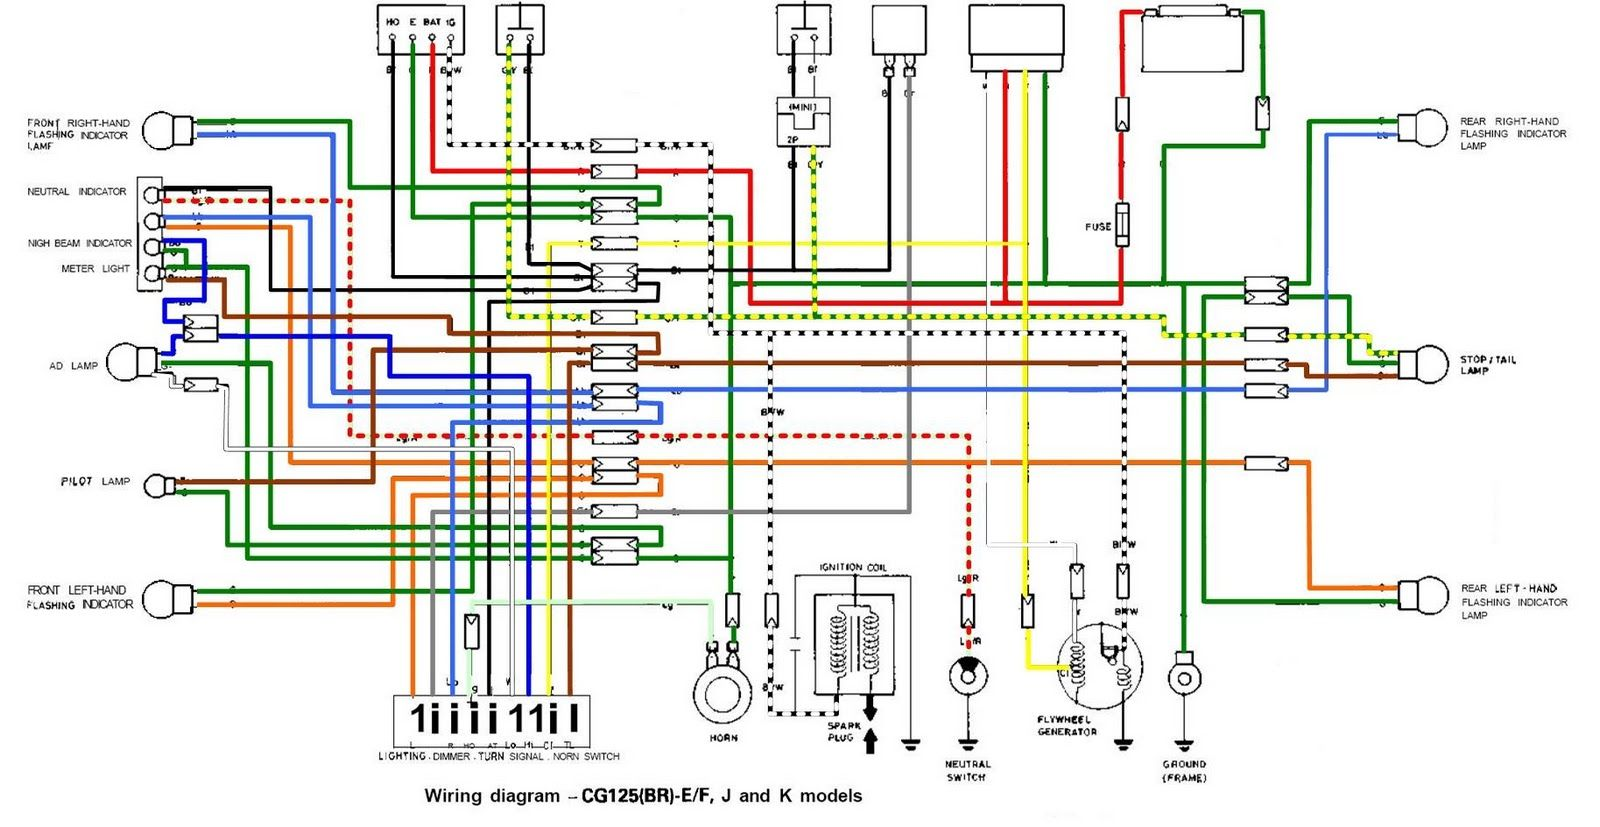 Virago 250 Wiring Diagram Hayabusa 1999 Pin By Peter On Cafe Racer Wire Elcto Pinterest Honda Motorcycle Electrical Photography Cheat Sheets Tips Cg125